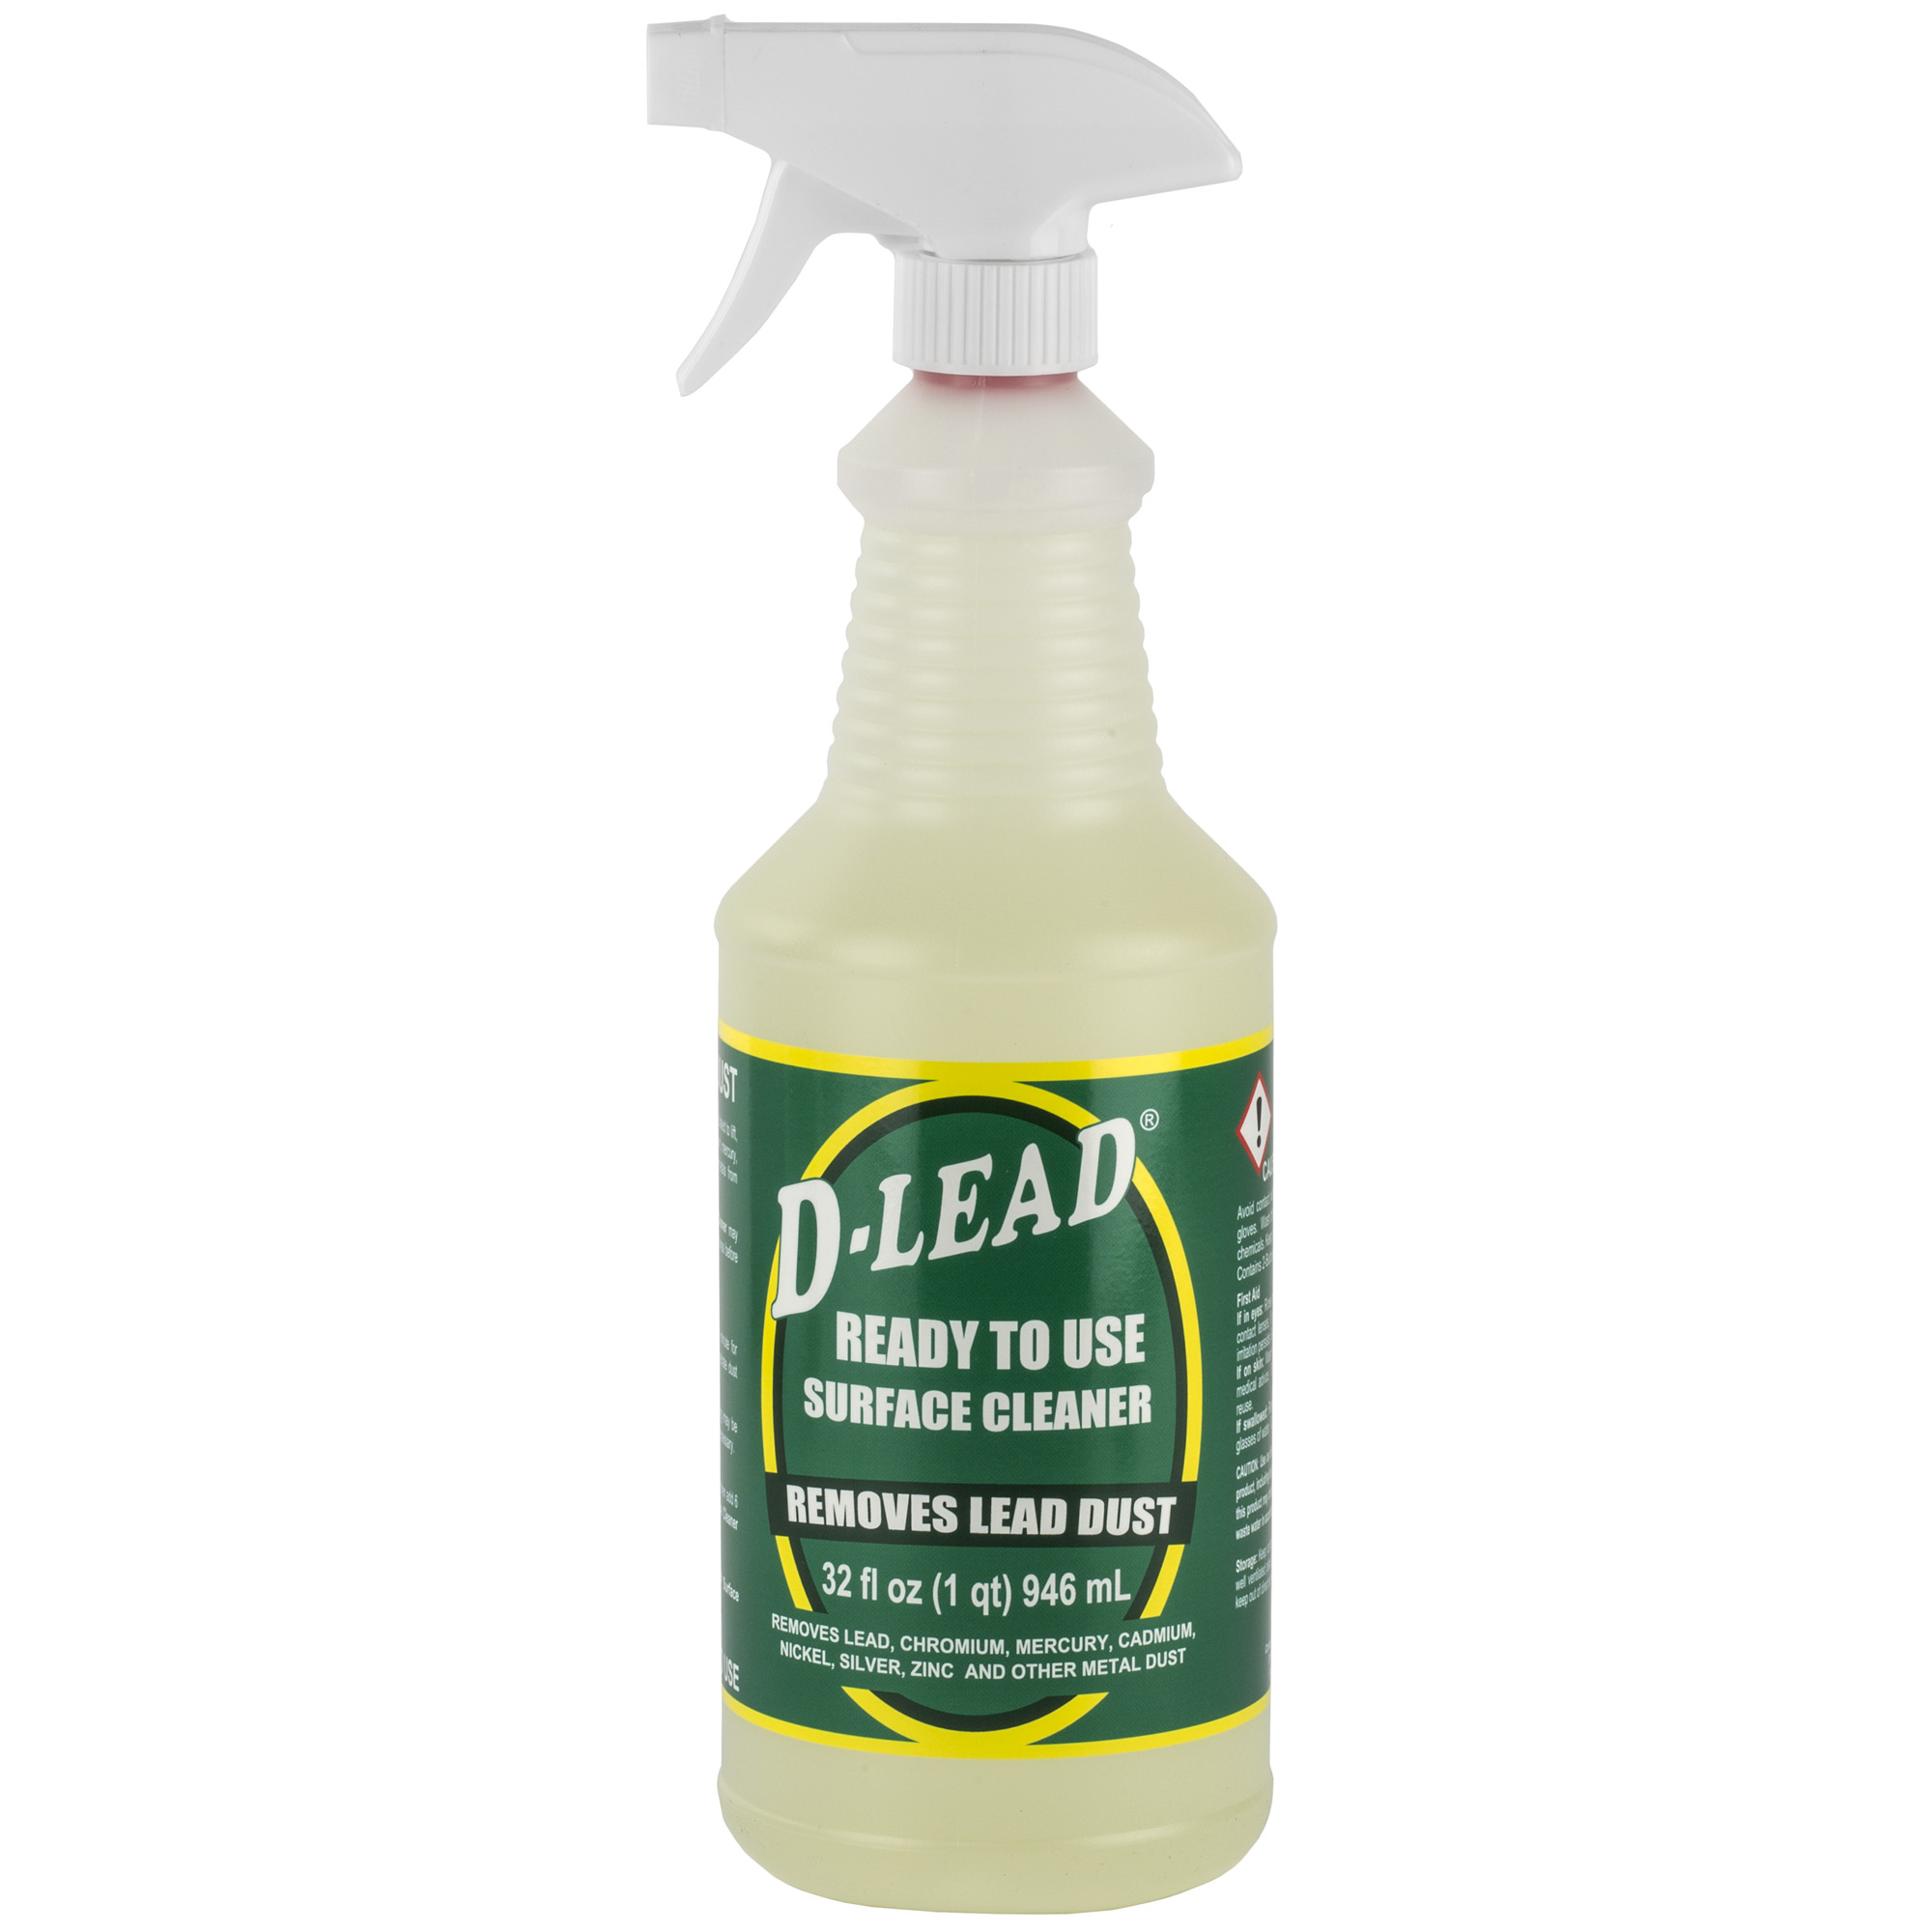 "D-Lead(R) Surface Cleaner ready to use in a 32 ounce spray bottle. No need for mixing or diluting. Simply spray"" scrub and wipe dry with a clean towel."